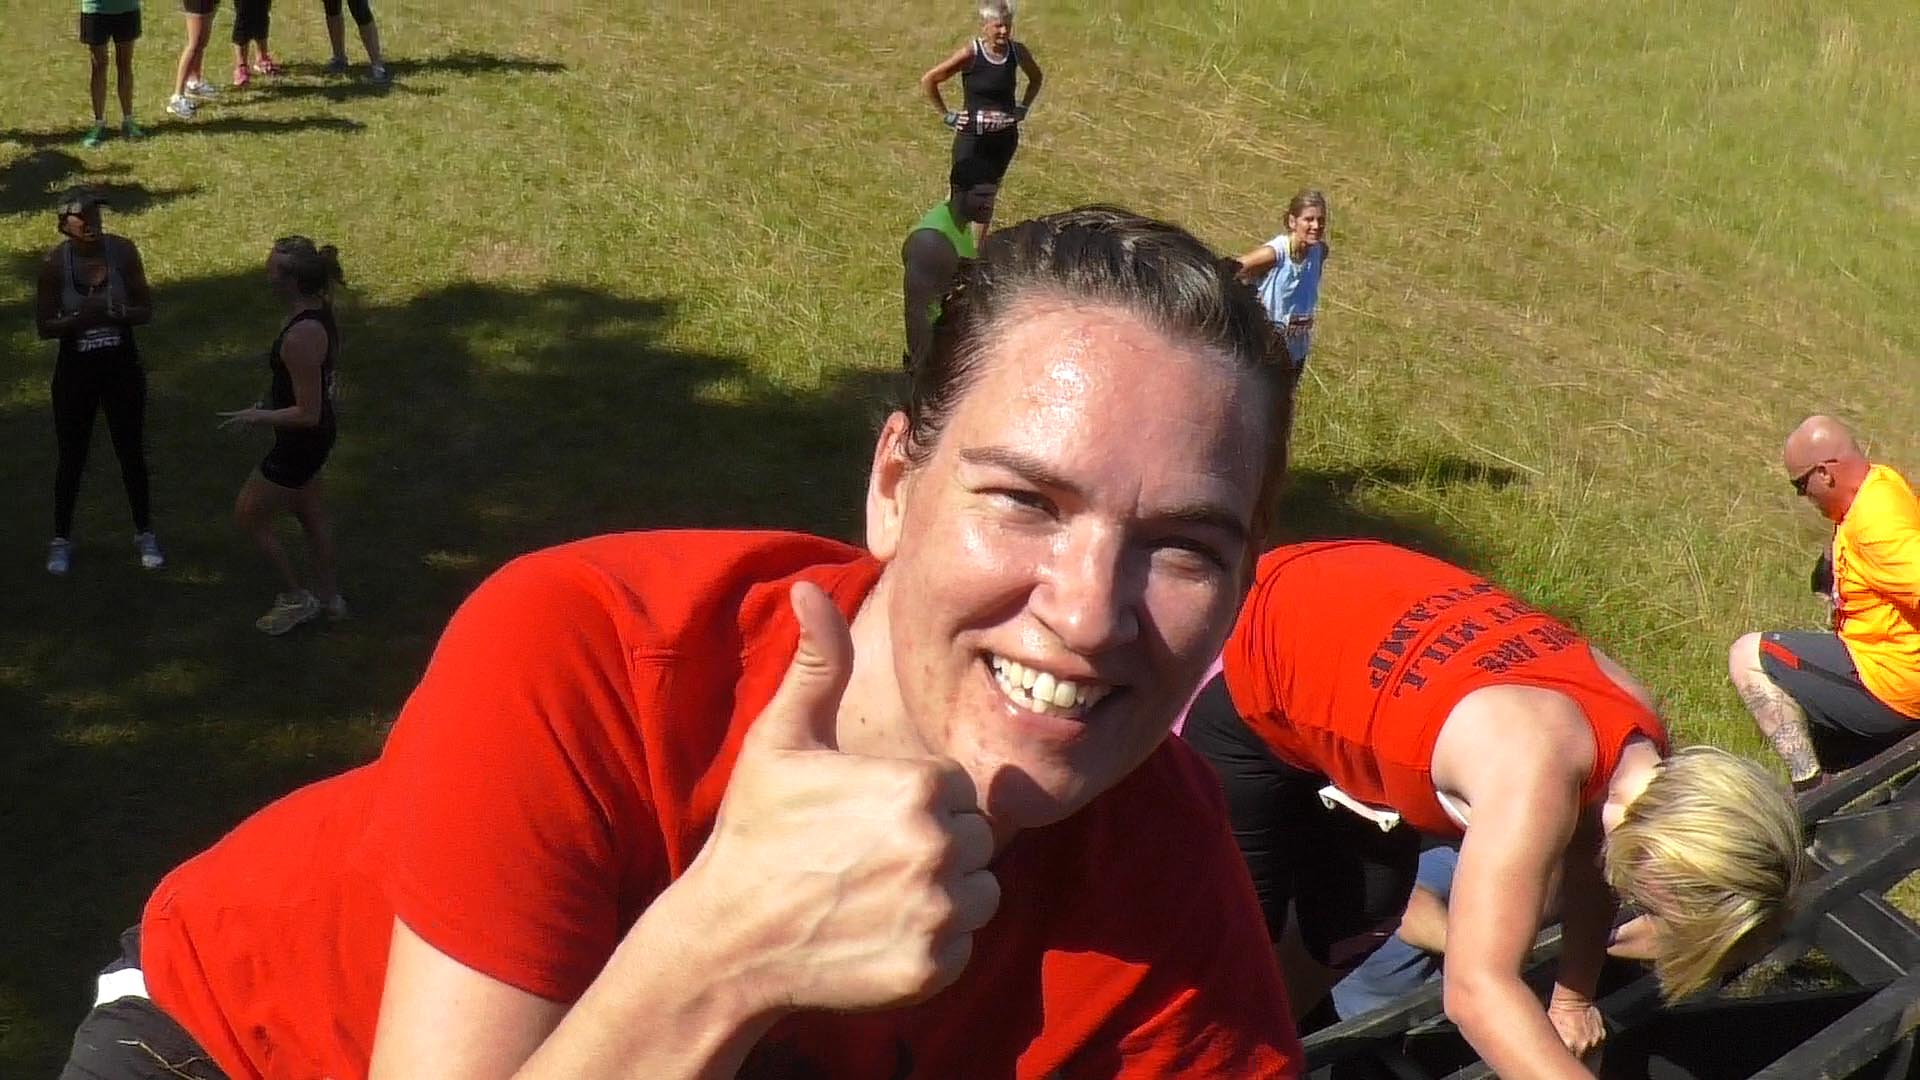 Do You Warrior Dash? Or Mud Run? {POV Video}